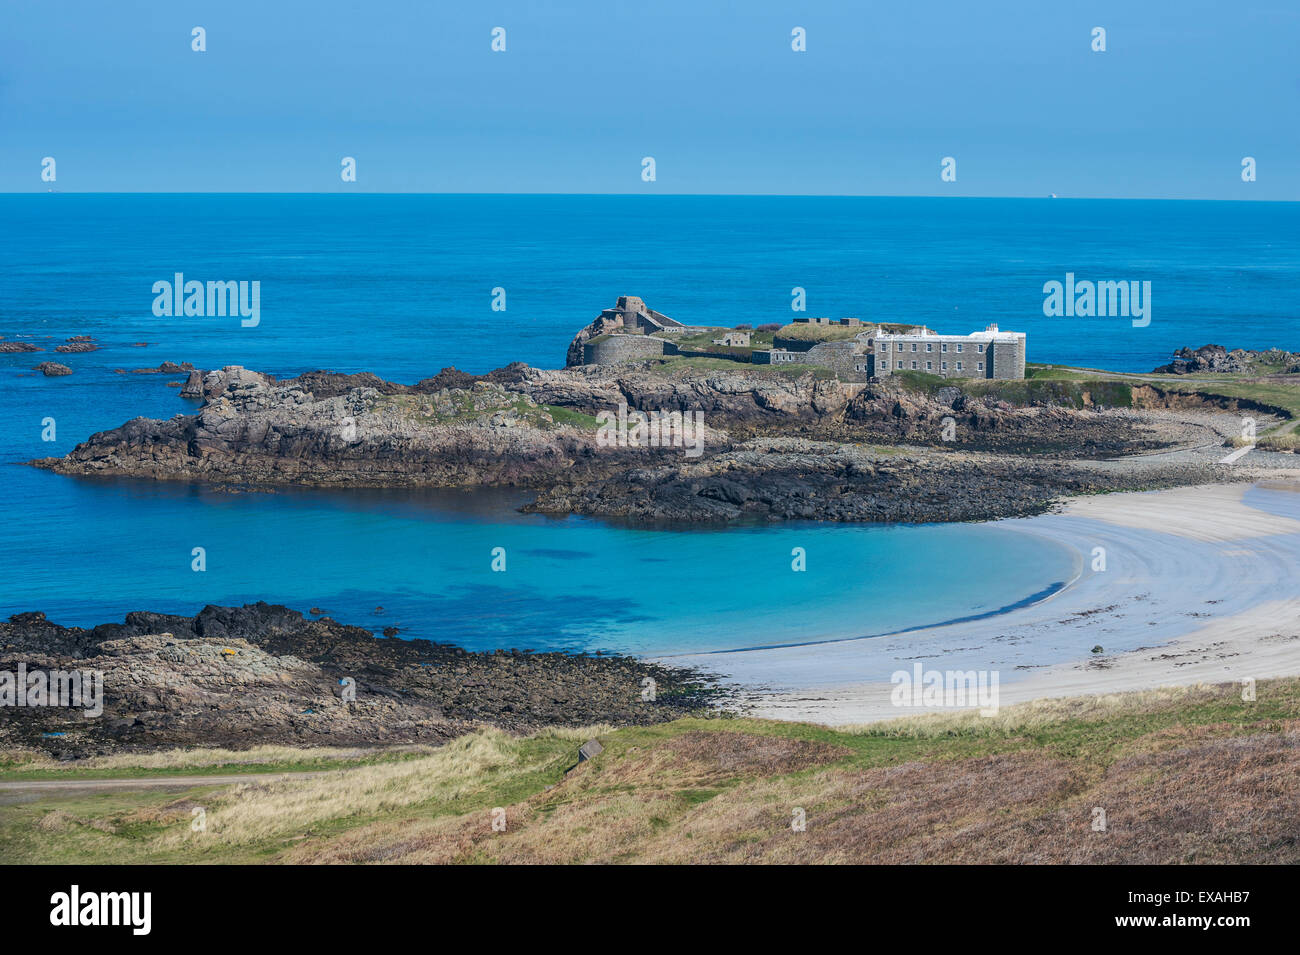 View over Chateau A L'Etoc (Chateau Le Toc) and Saye Beach, Alderney, Channel Islands, United Kingdom, Europe - Stock Image